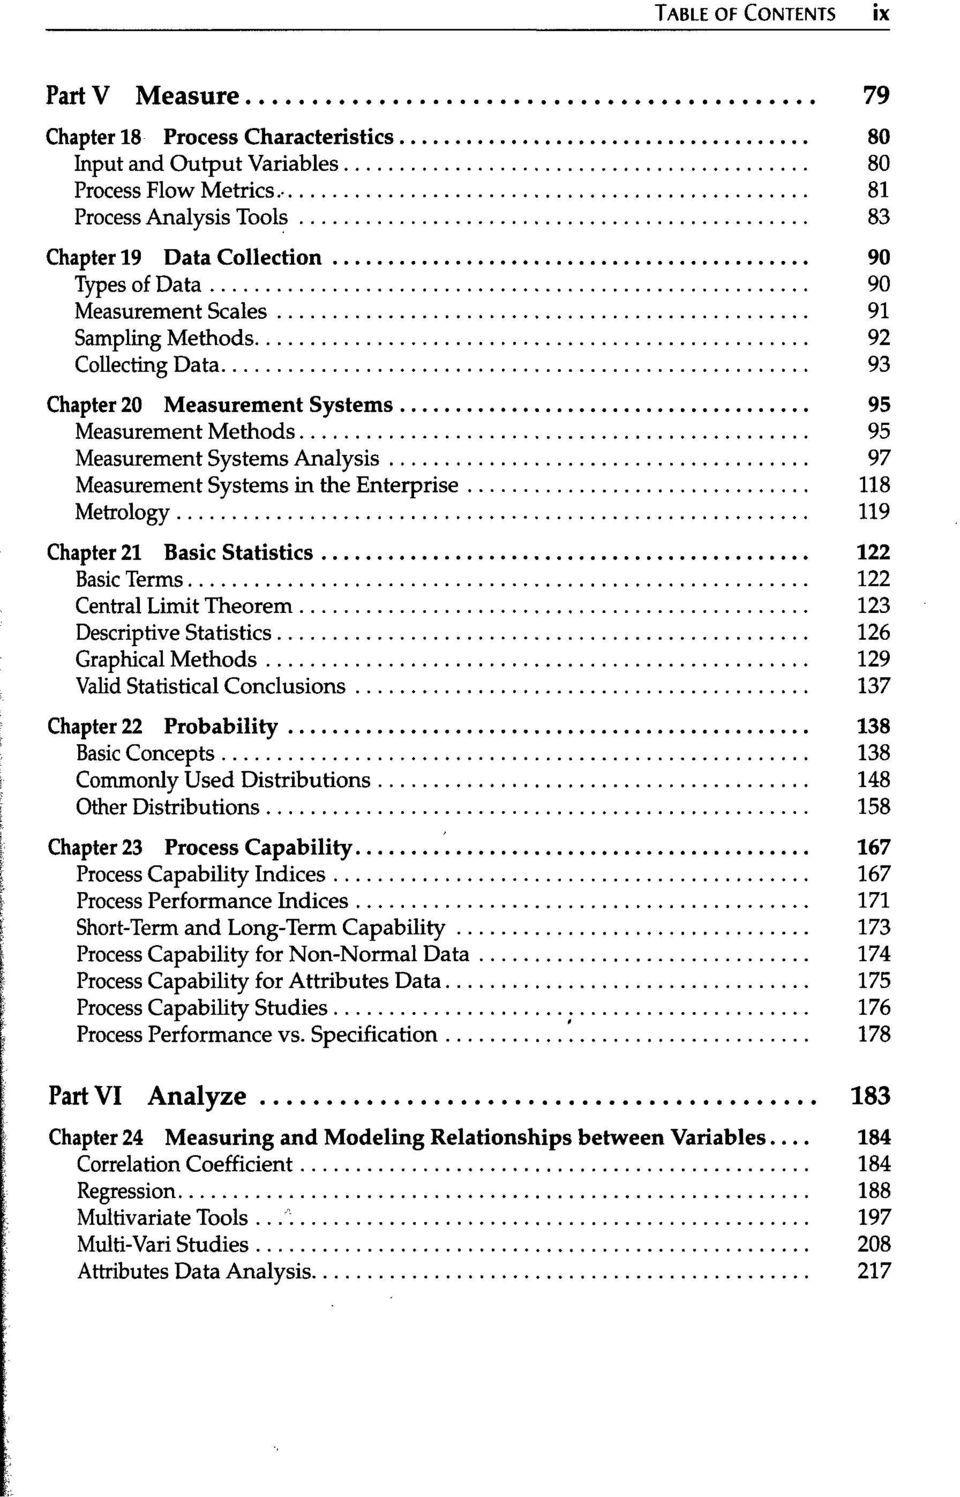 Measurement Systems Analysis 97 Measurement Systems in the Enterprise 118 Metrology 119 Chapter 21 Basic Statistics 122 Basic Terms 122 Central Limit Theorem 123 Descriptive Statistics 126 Graphical